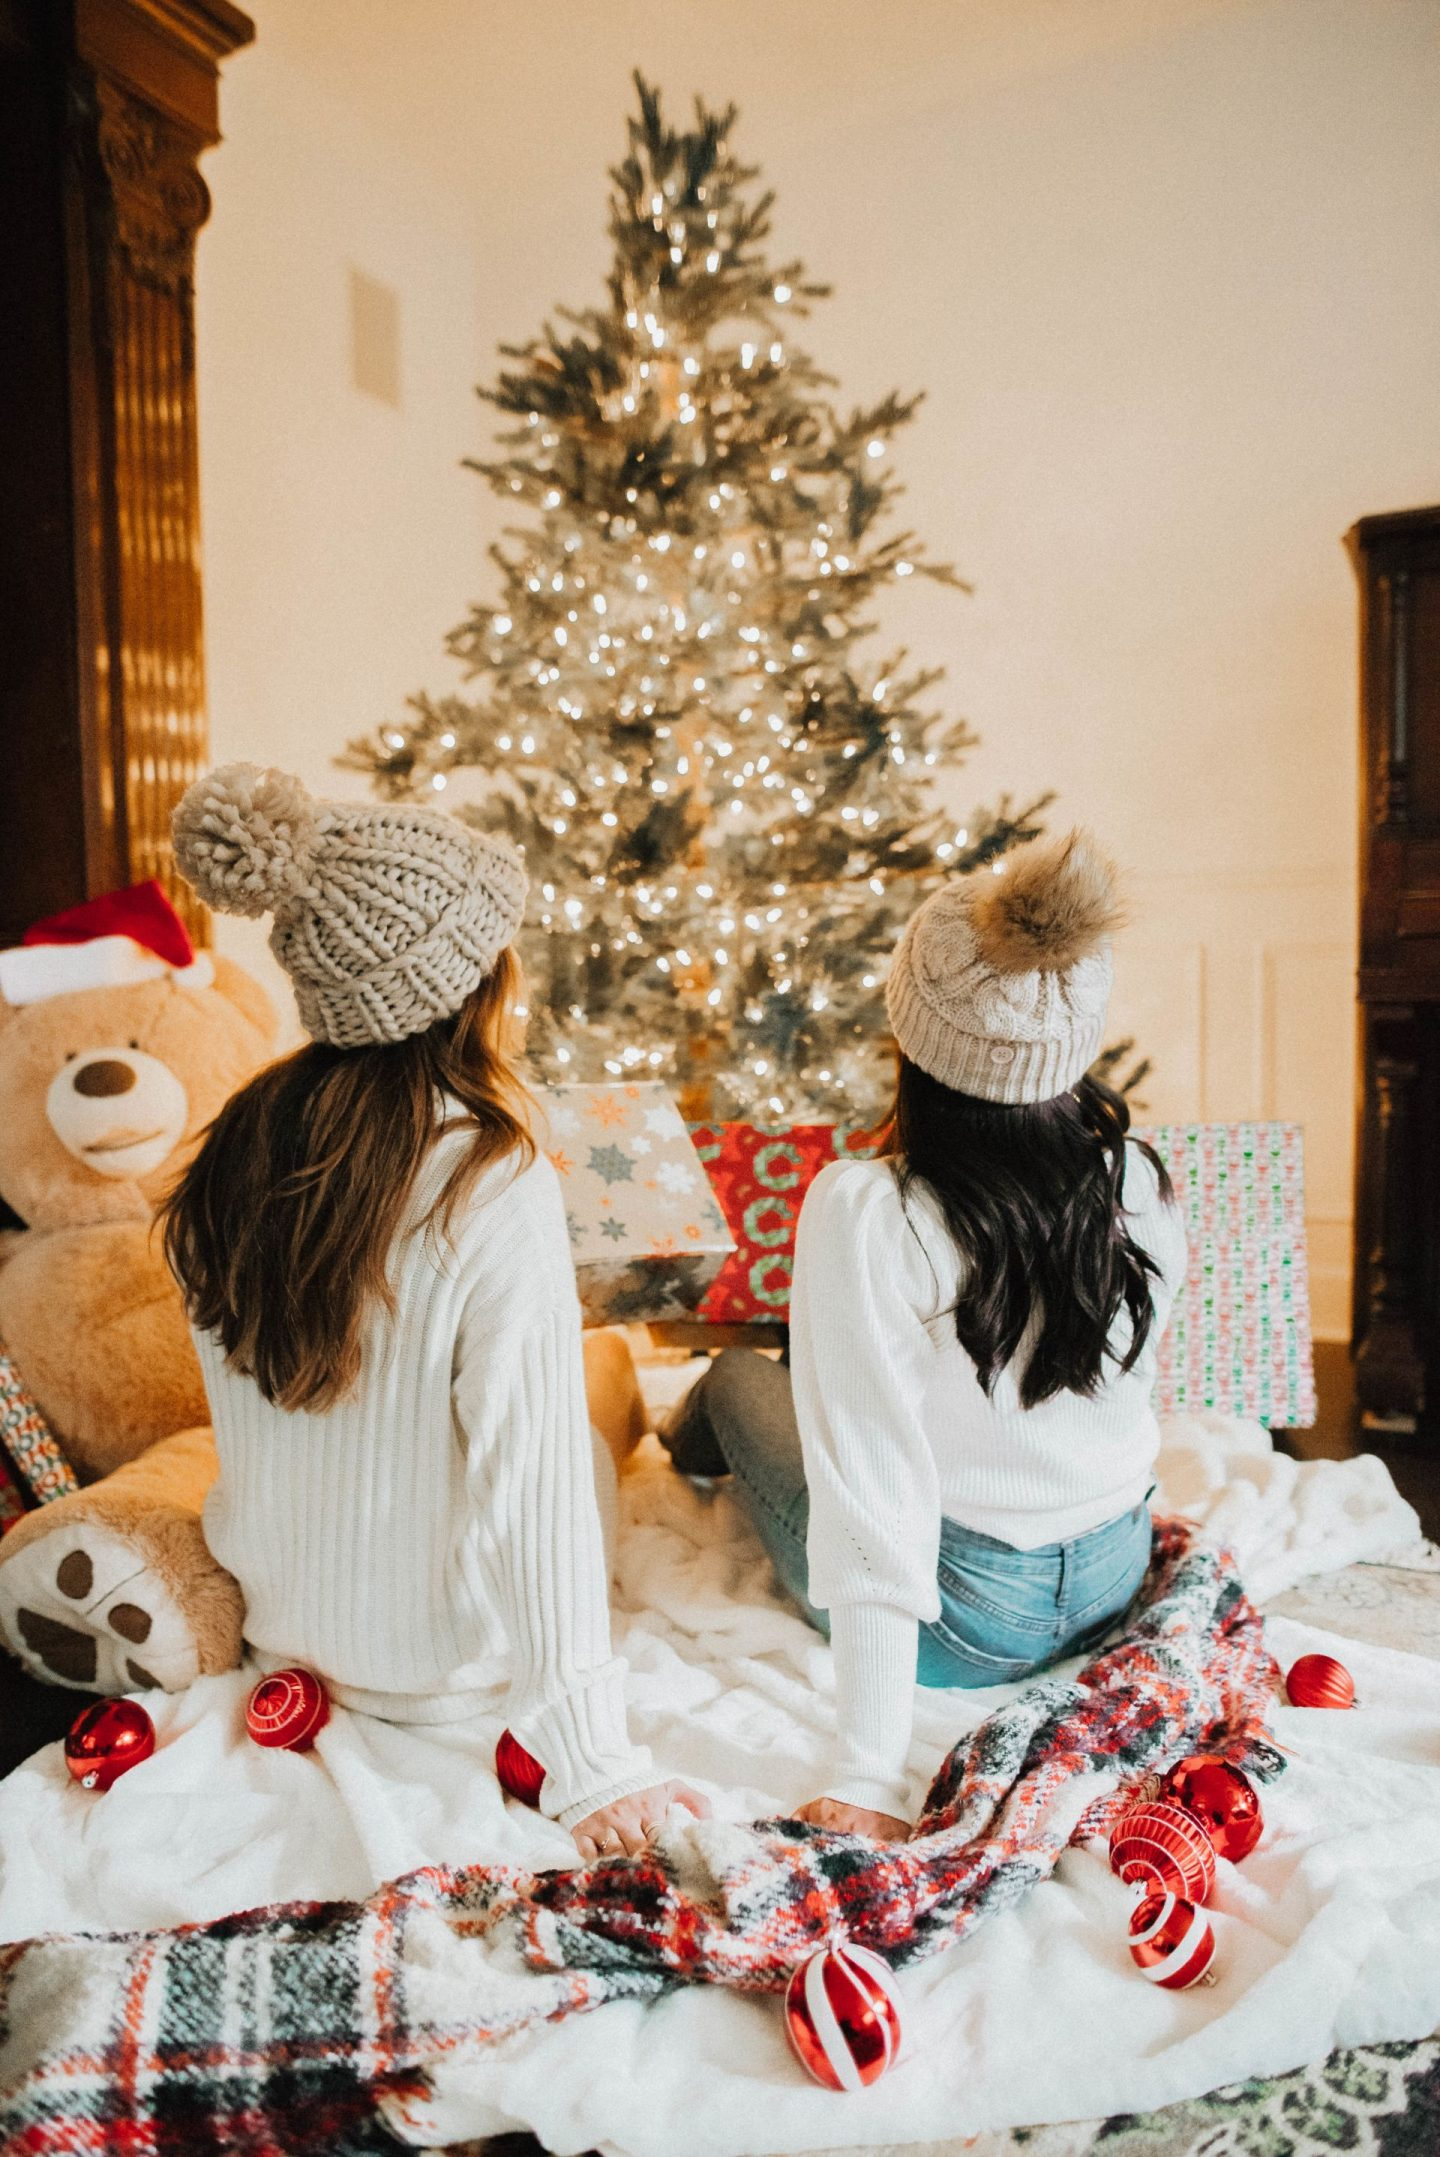 Christmas photo shoot ideas – Christmas photo shoot outfits – holiday photo shoot ideas – holiday photos – Christmas family photos - best friend holiday pictures – holiday décor - image from www.emmasedition.com - Instagram @emmasedition